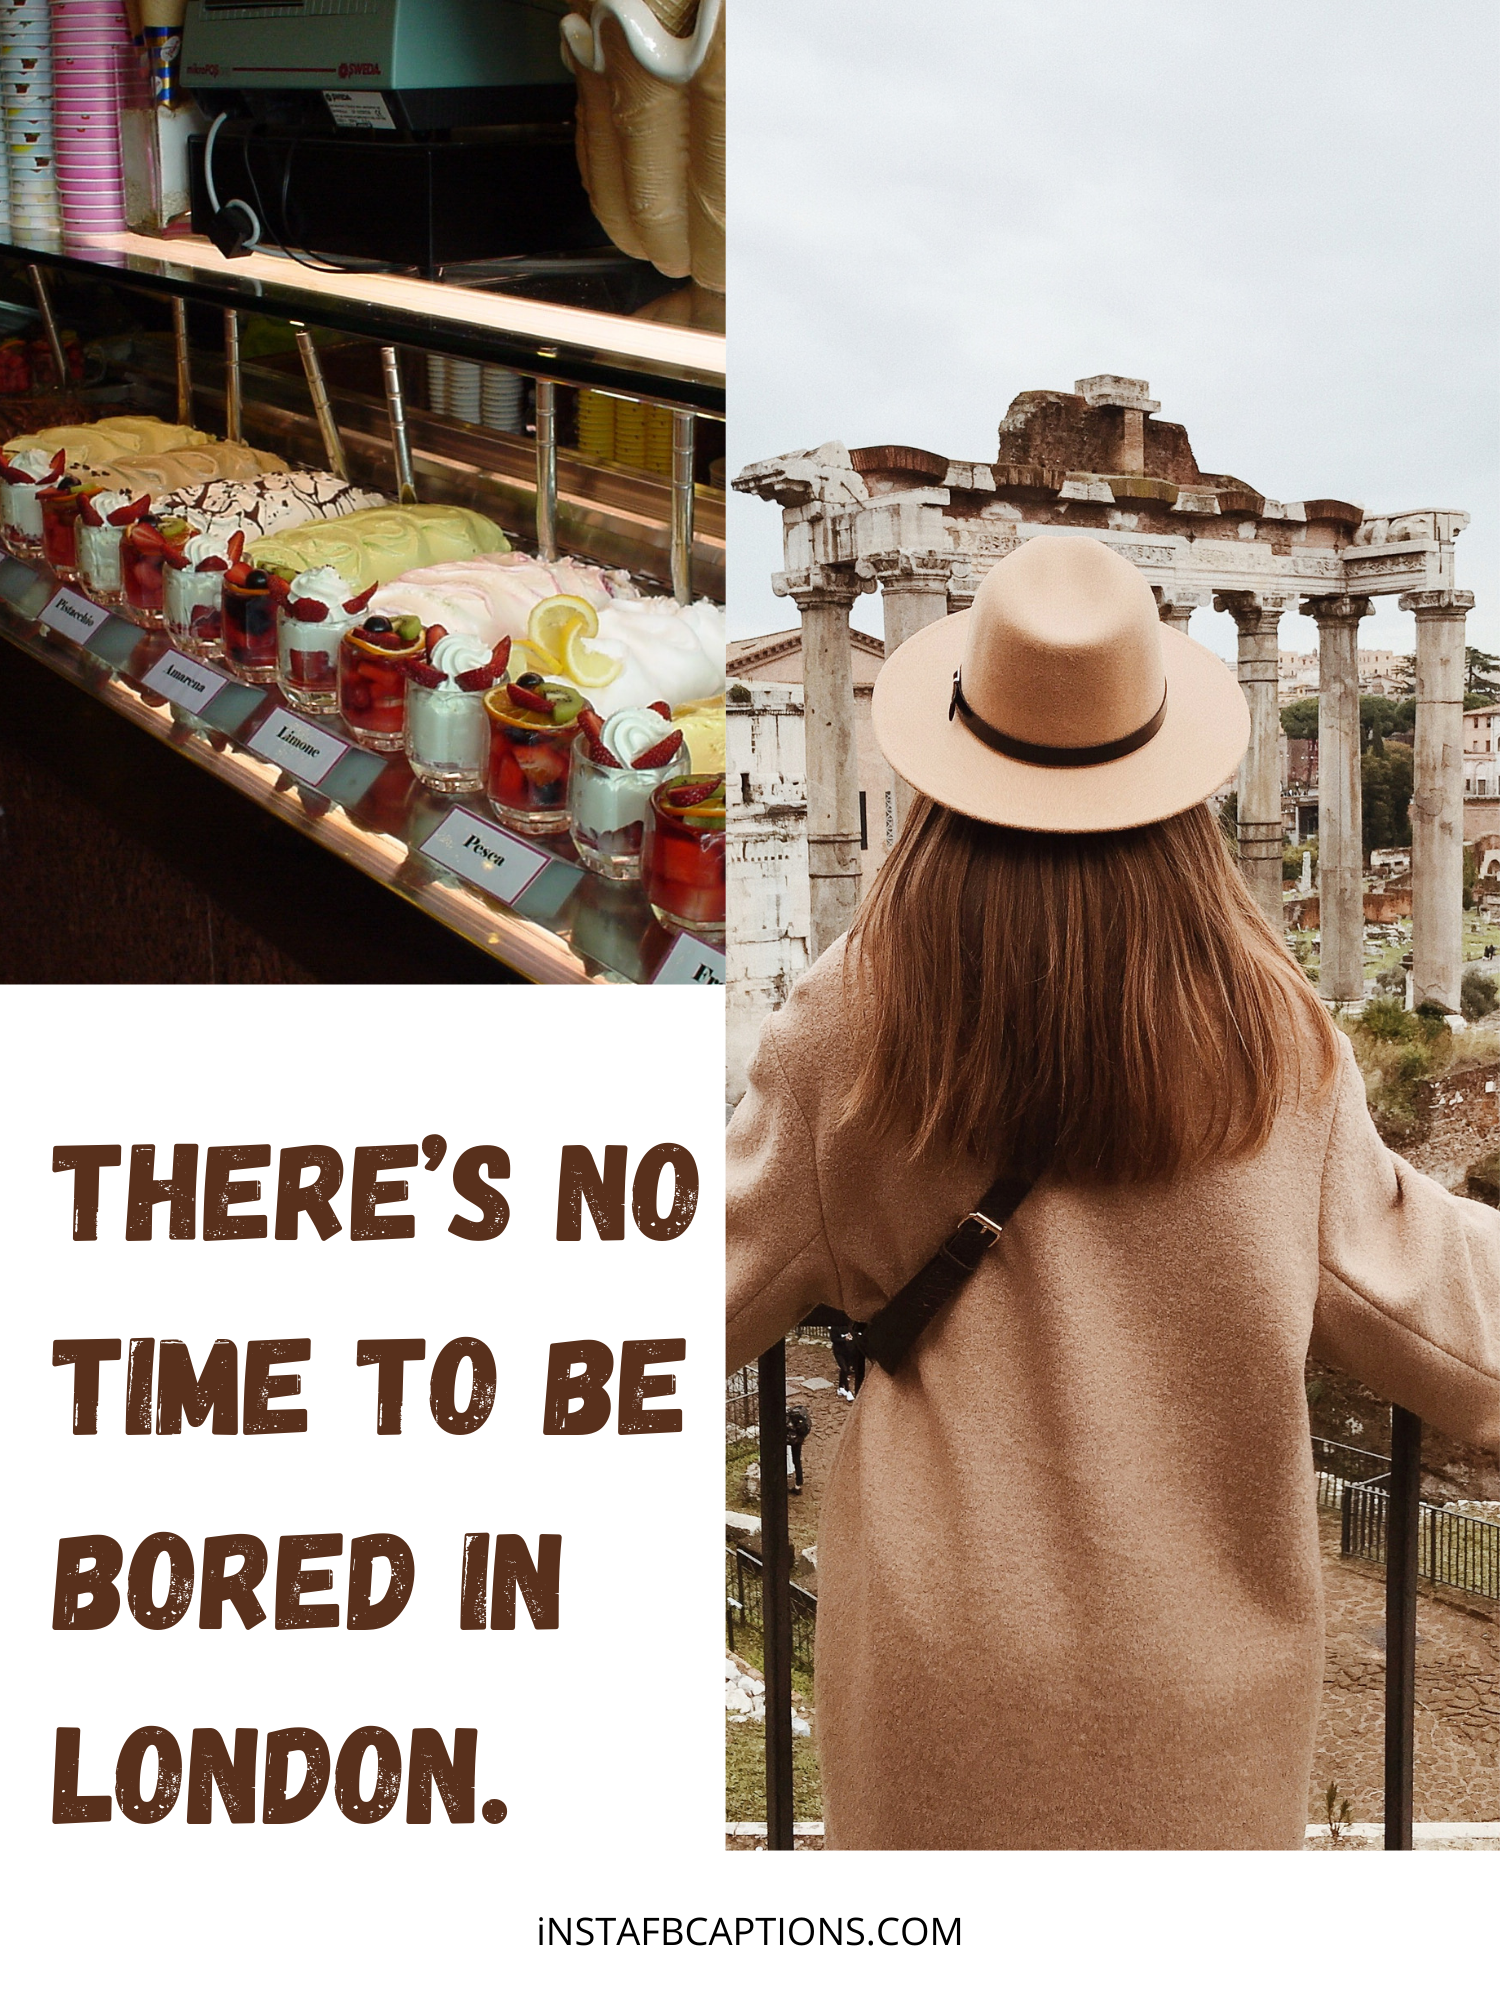 Classic Captions To Showcase The London Lifestyle  - Classic Captions to Showcase the London Lifestyle - 99+ LONDON Instagram Captions for London Diaries, Bus, & Dreams in 2021